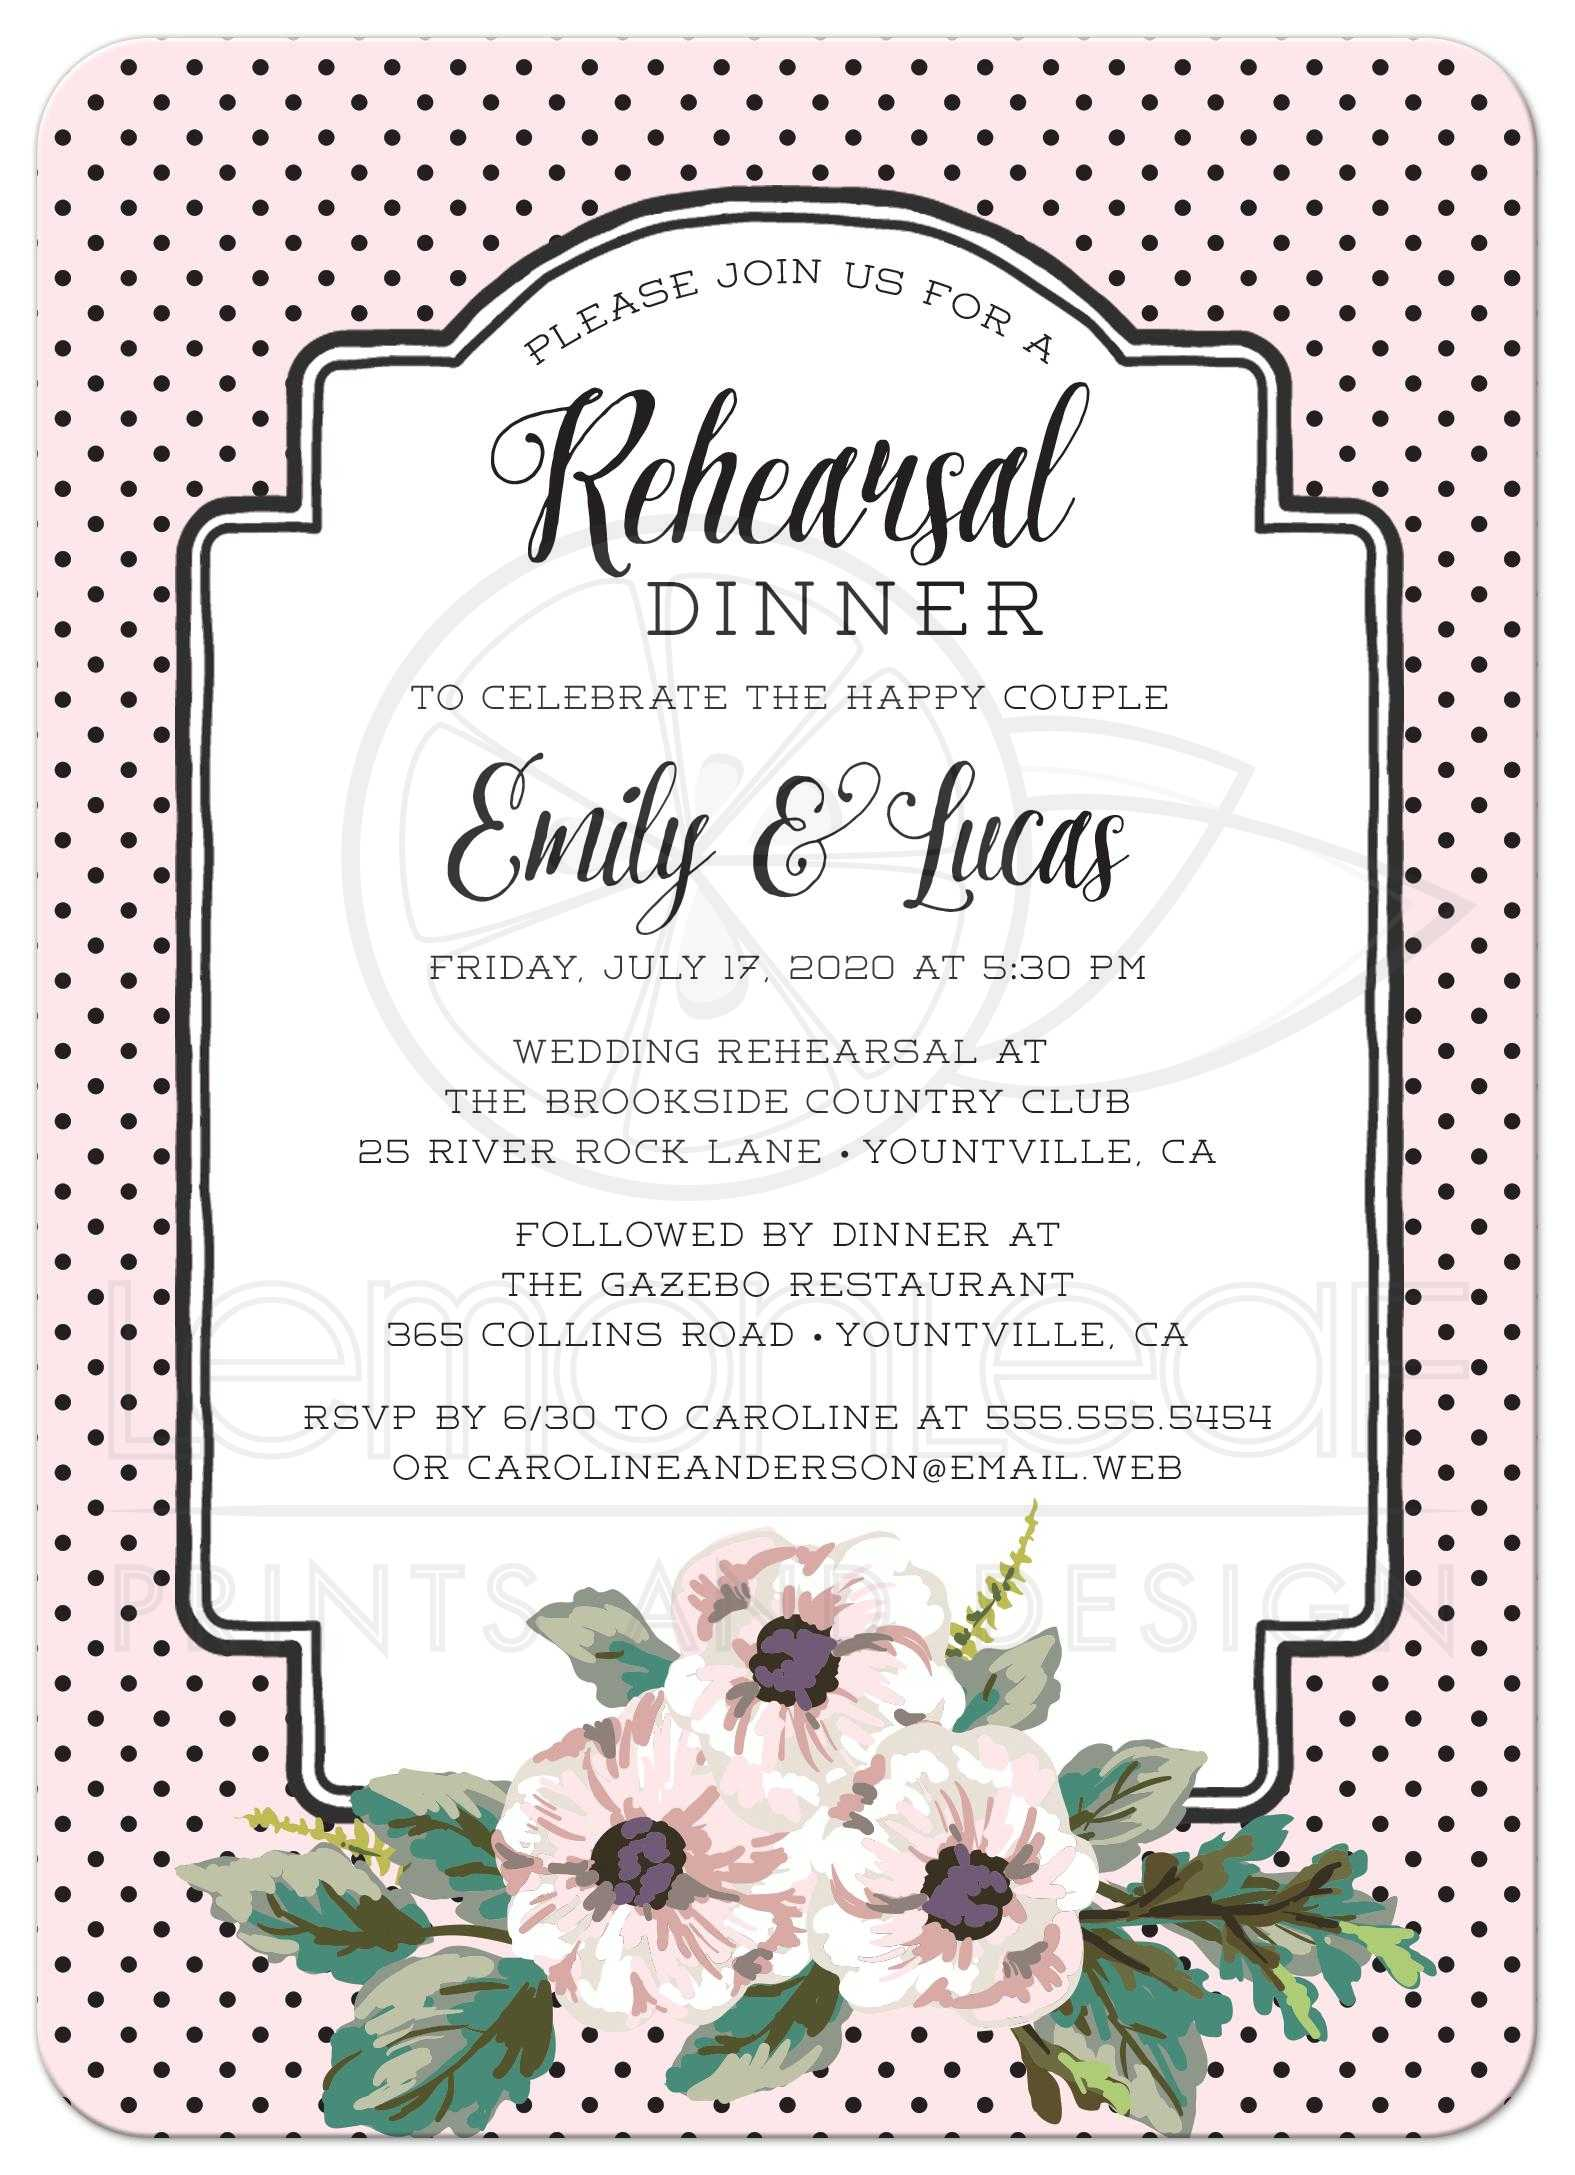 Rehearsal Dinner Menu Ideas | Examples and Forms